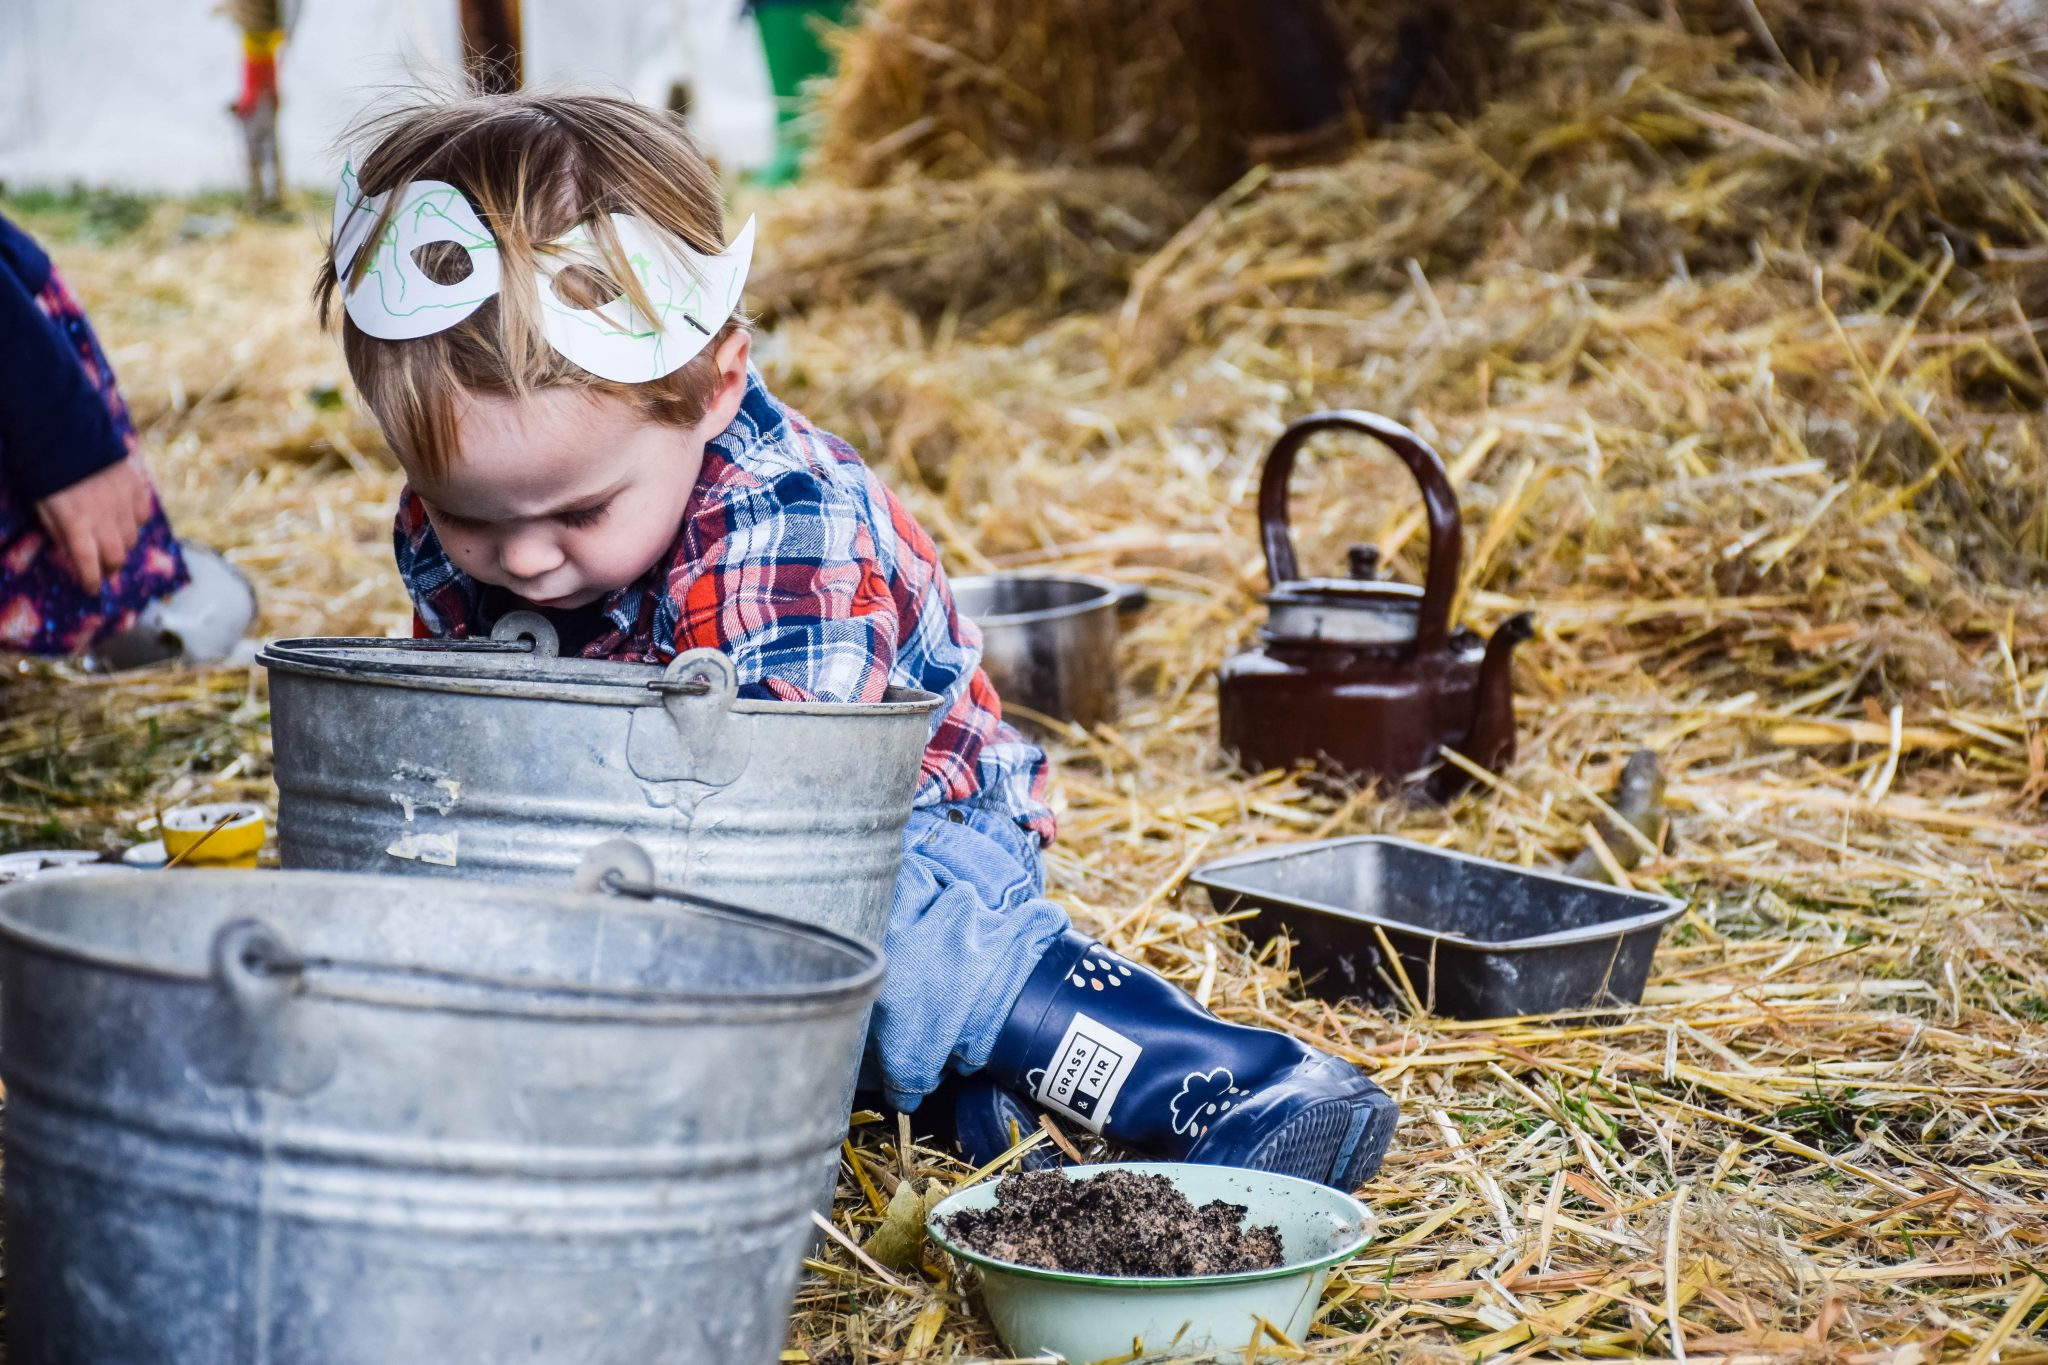 The Good Life Experience - the mud kitchen